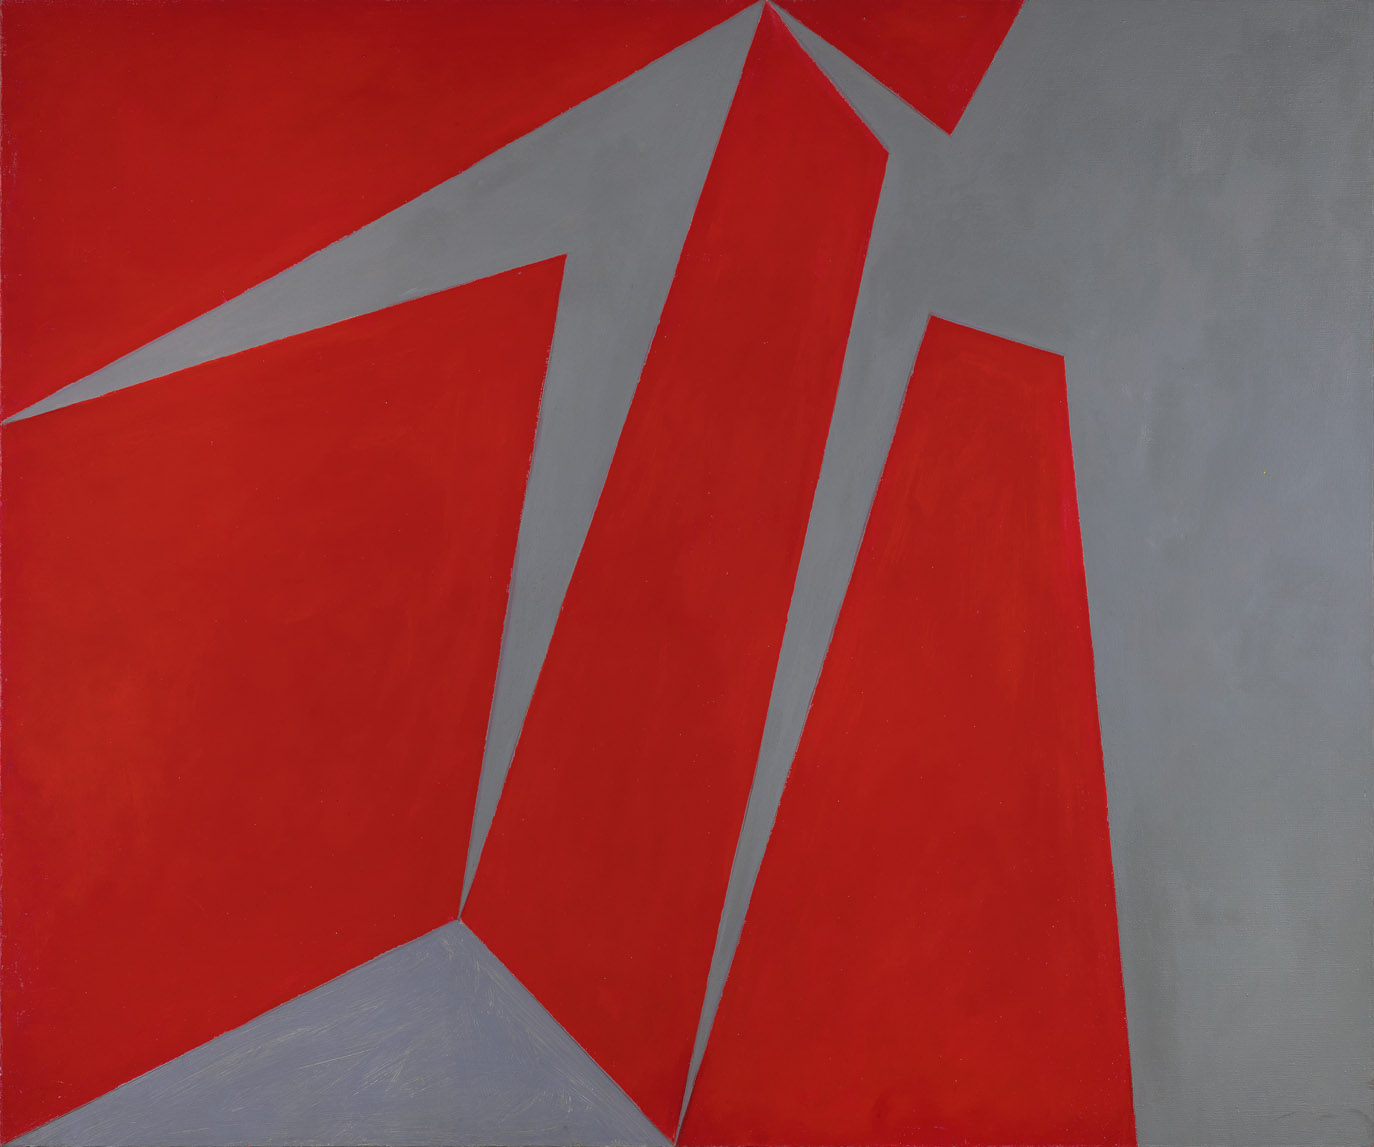 Magical Space Forms , 1954  oil on canvas 50 x 60 inches; 127 x 152.4 centimeters